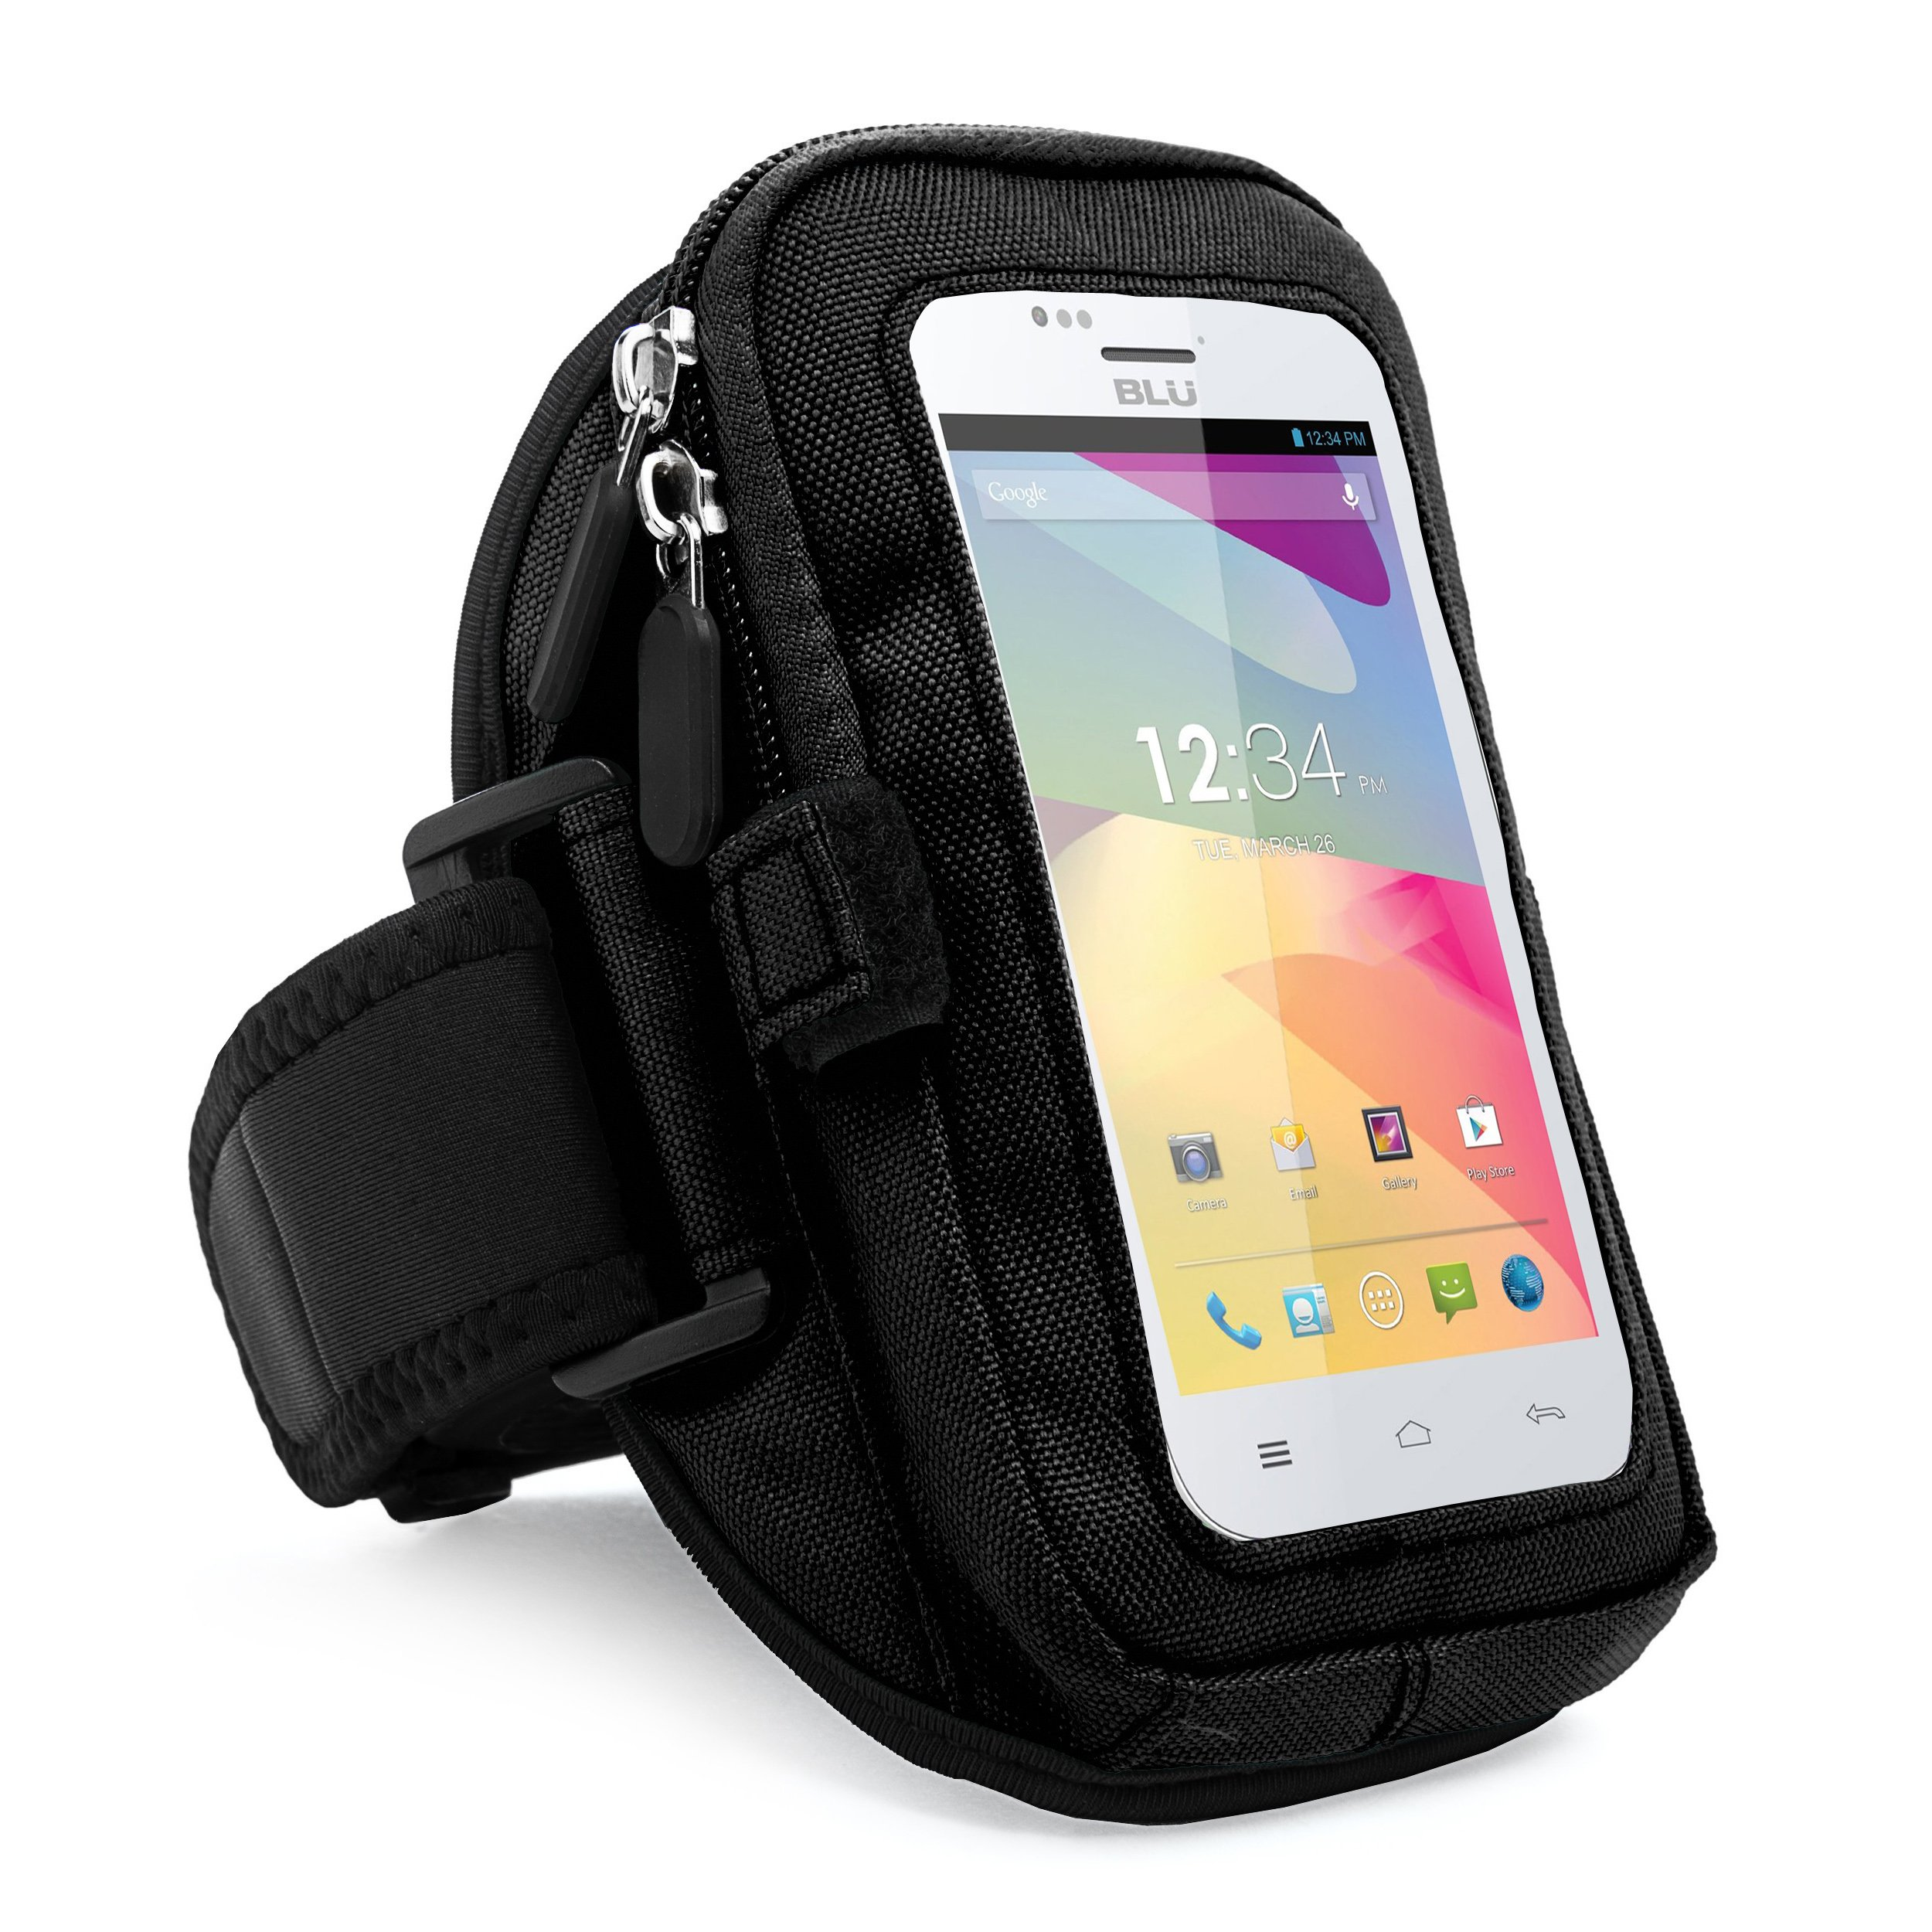 SumacLife VanGoddy zippered Sport Case Cover Gym Running with removable strap Armband with card & key slot for BLU Advance 4.0/Dash Music 4.0 D272a/Dash JR 4.0K Android 4.2/LG (Black)